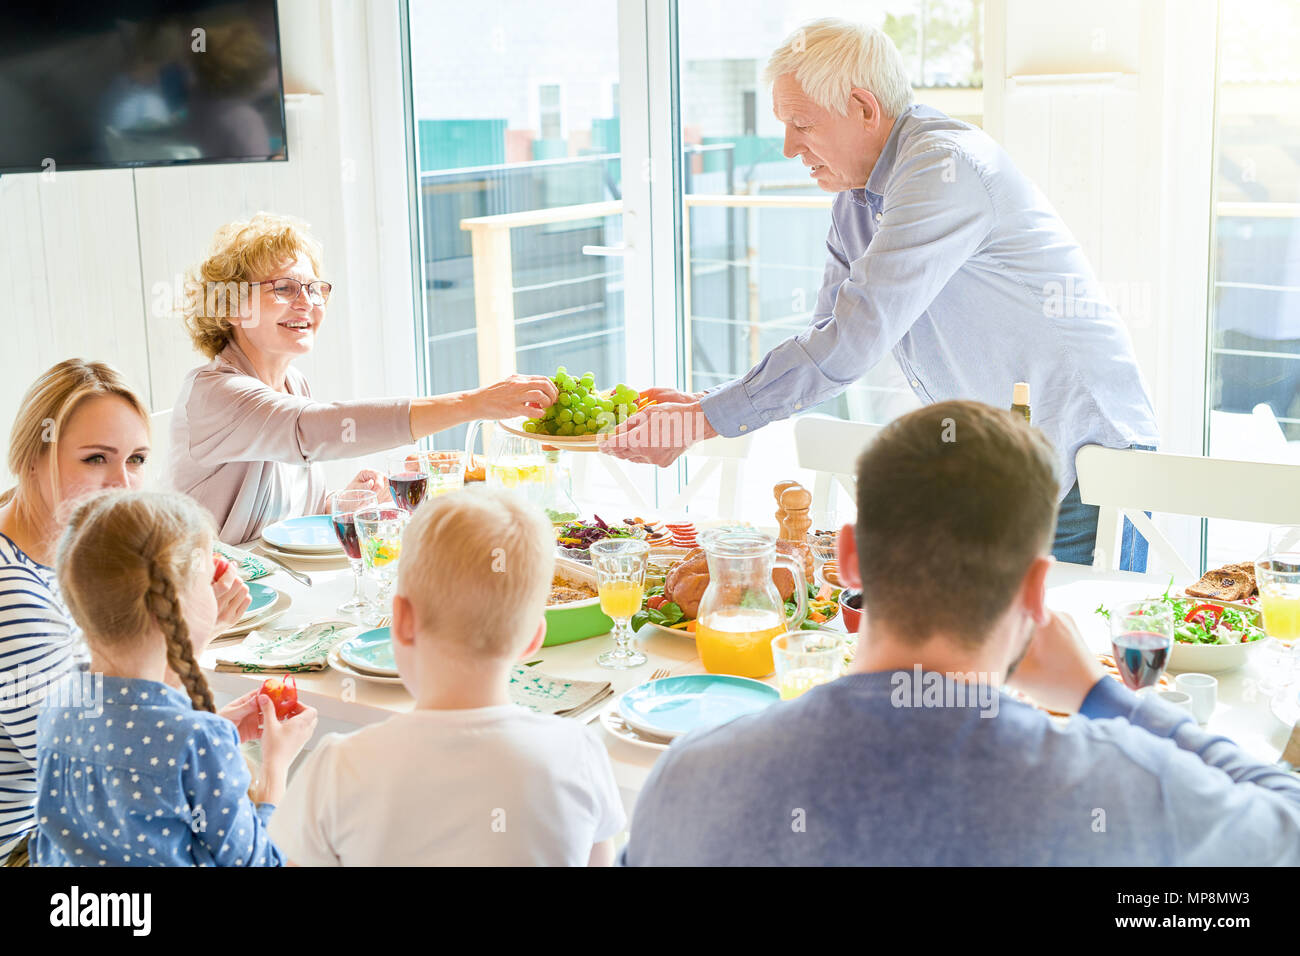 Family Dinner at Home - Stock Image